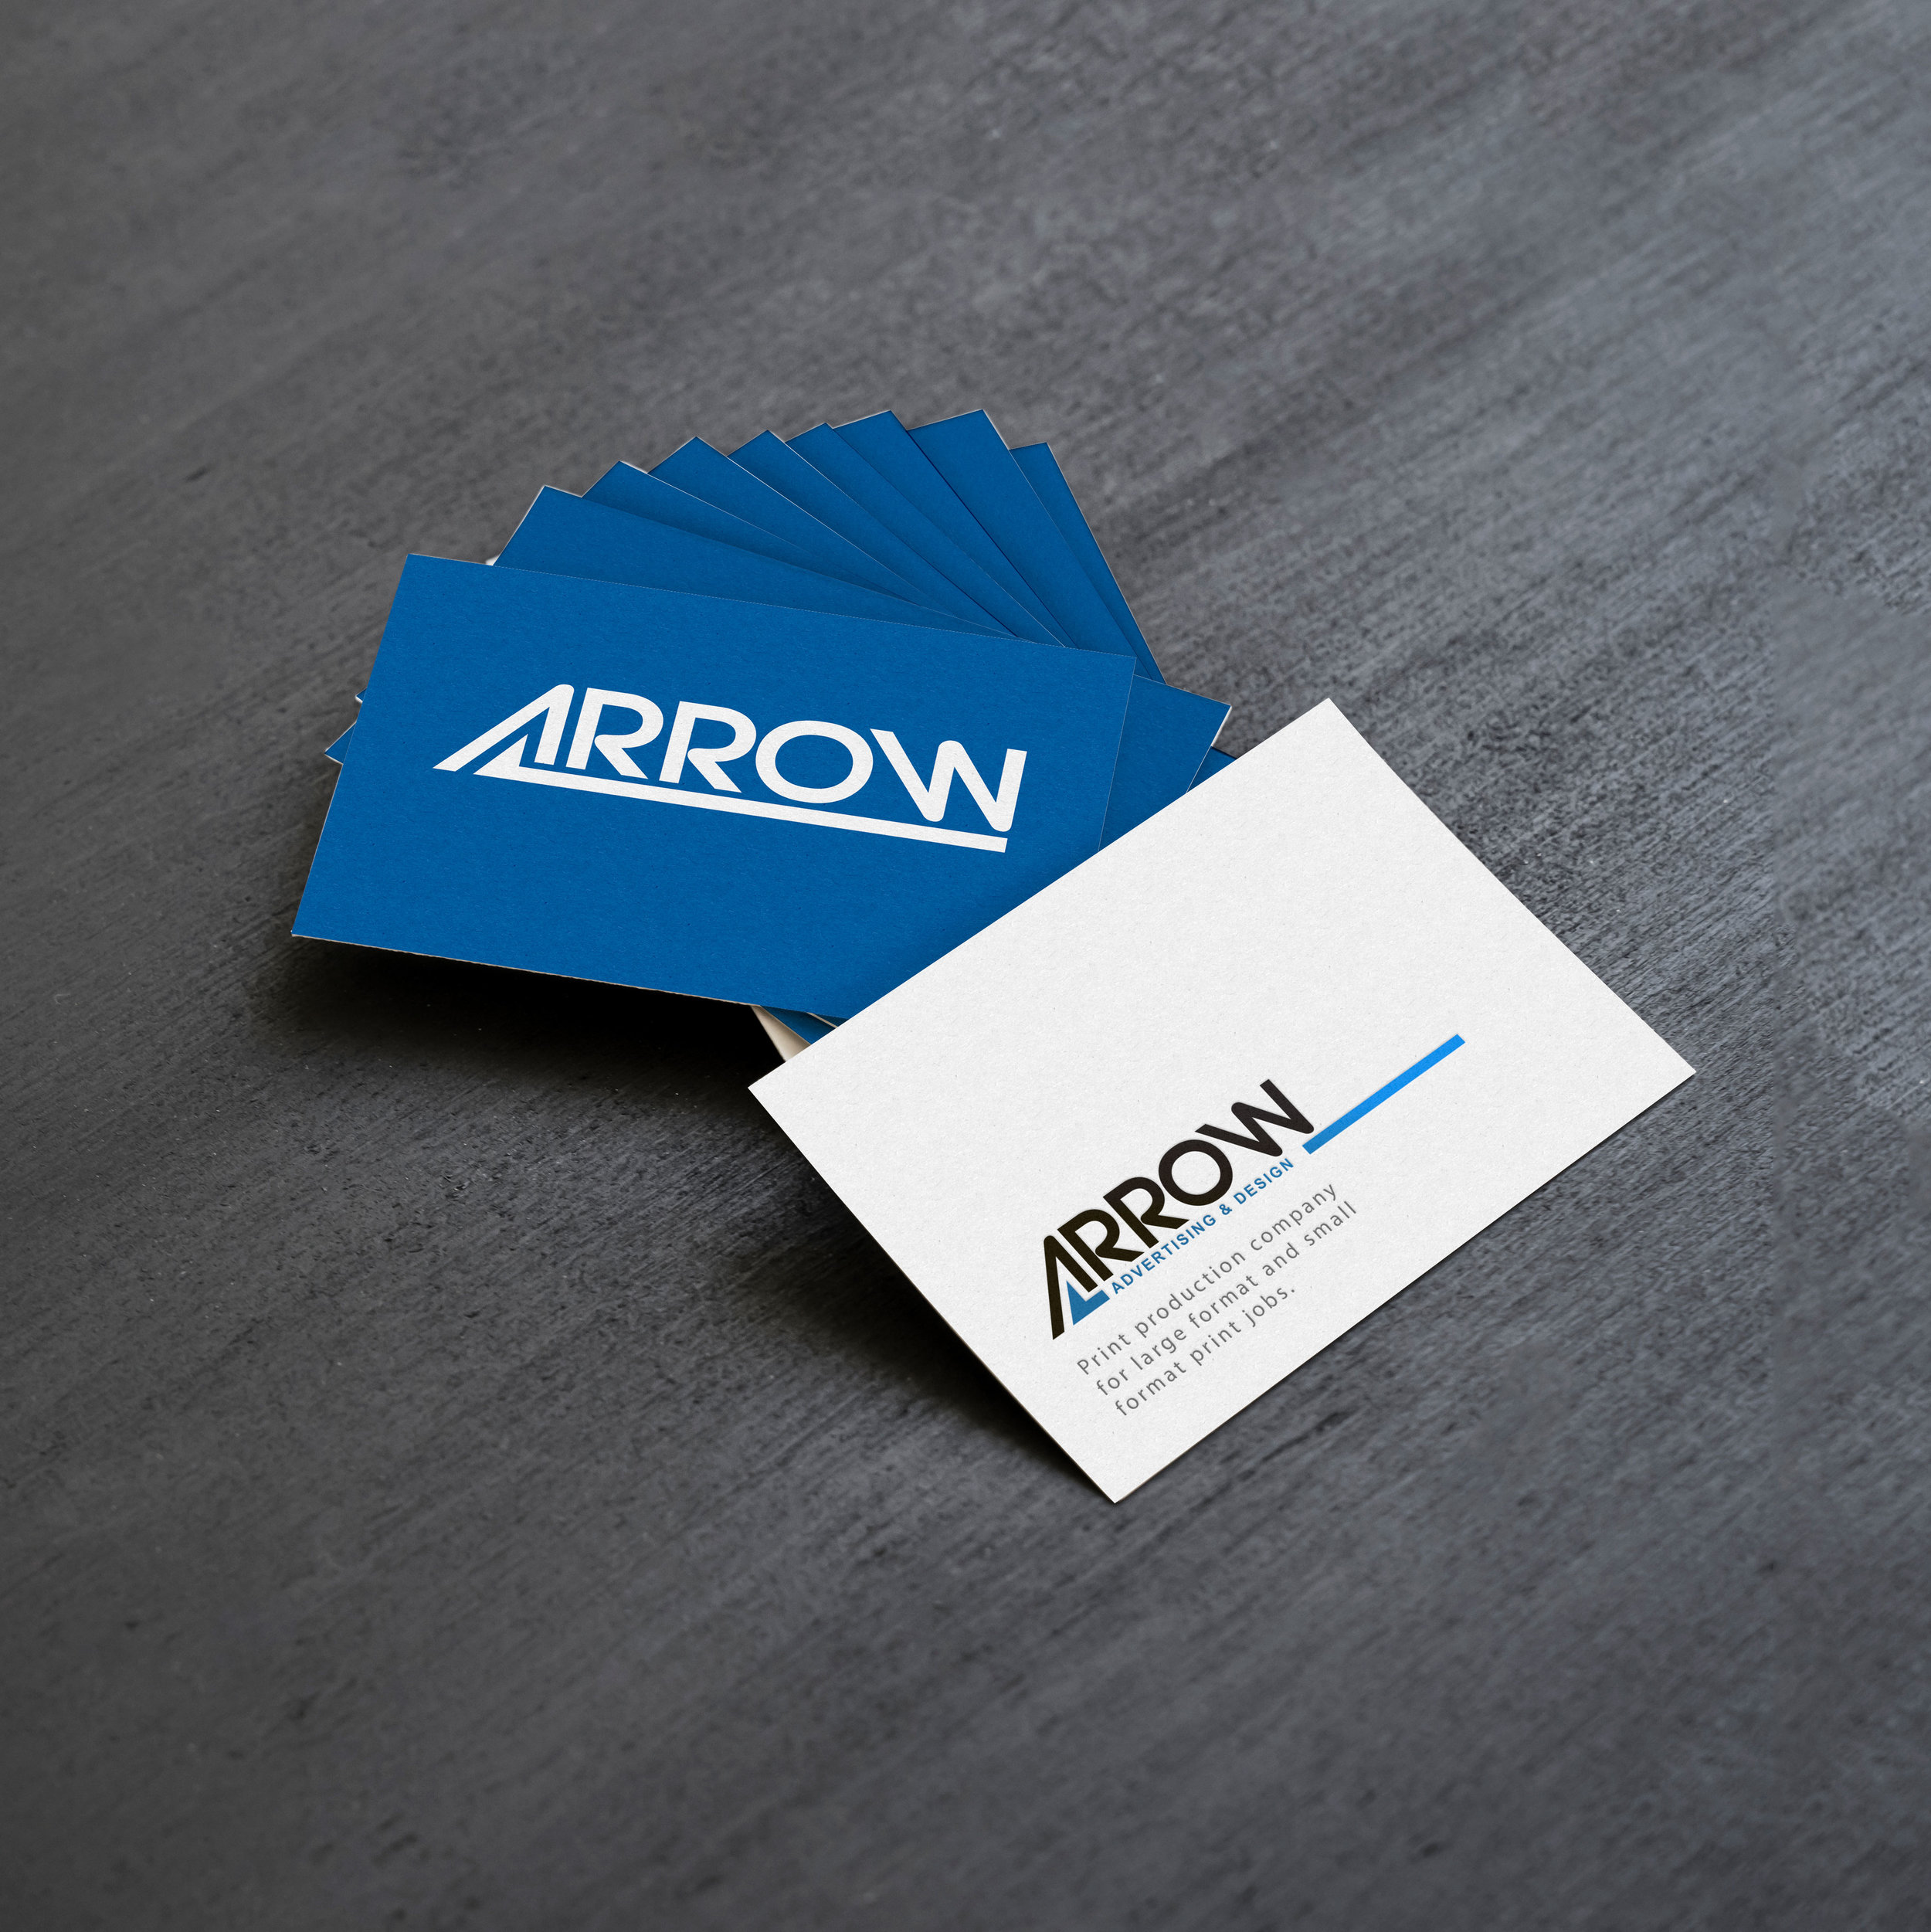 Arrow Printing - Arrow Printing is a print production company for large format and small format print jobs. Whether it's for your home office or showroom we produce your prints in the desired format. From a canvas photo frame to a huge backdrop. Some of the most common things we do are: canvas frames, backdrops, Standees, Menu's, neon signage, company signage, wristband, label printing, flyers, stickers, wallpapers, acrylic displays and other Point-Of-Sale-Material.